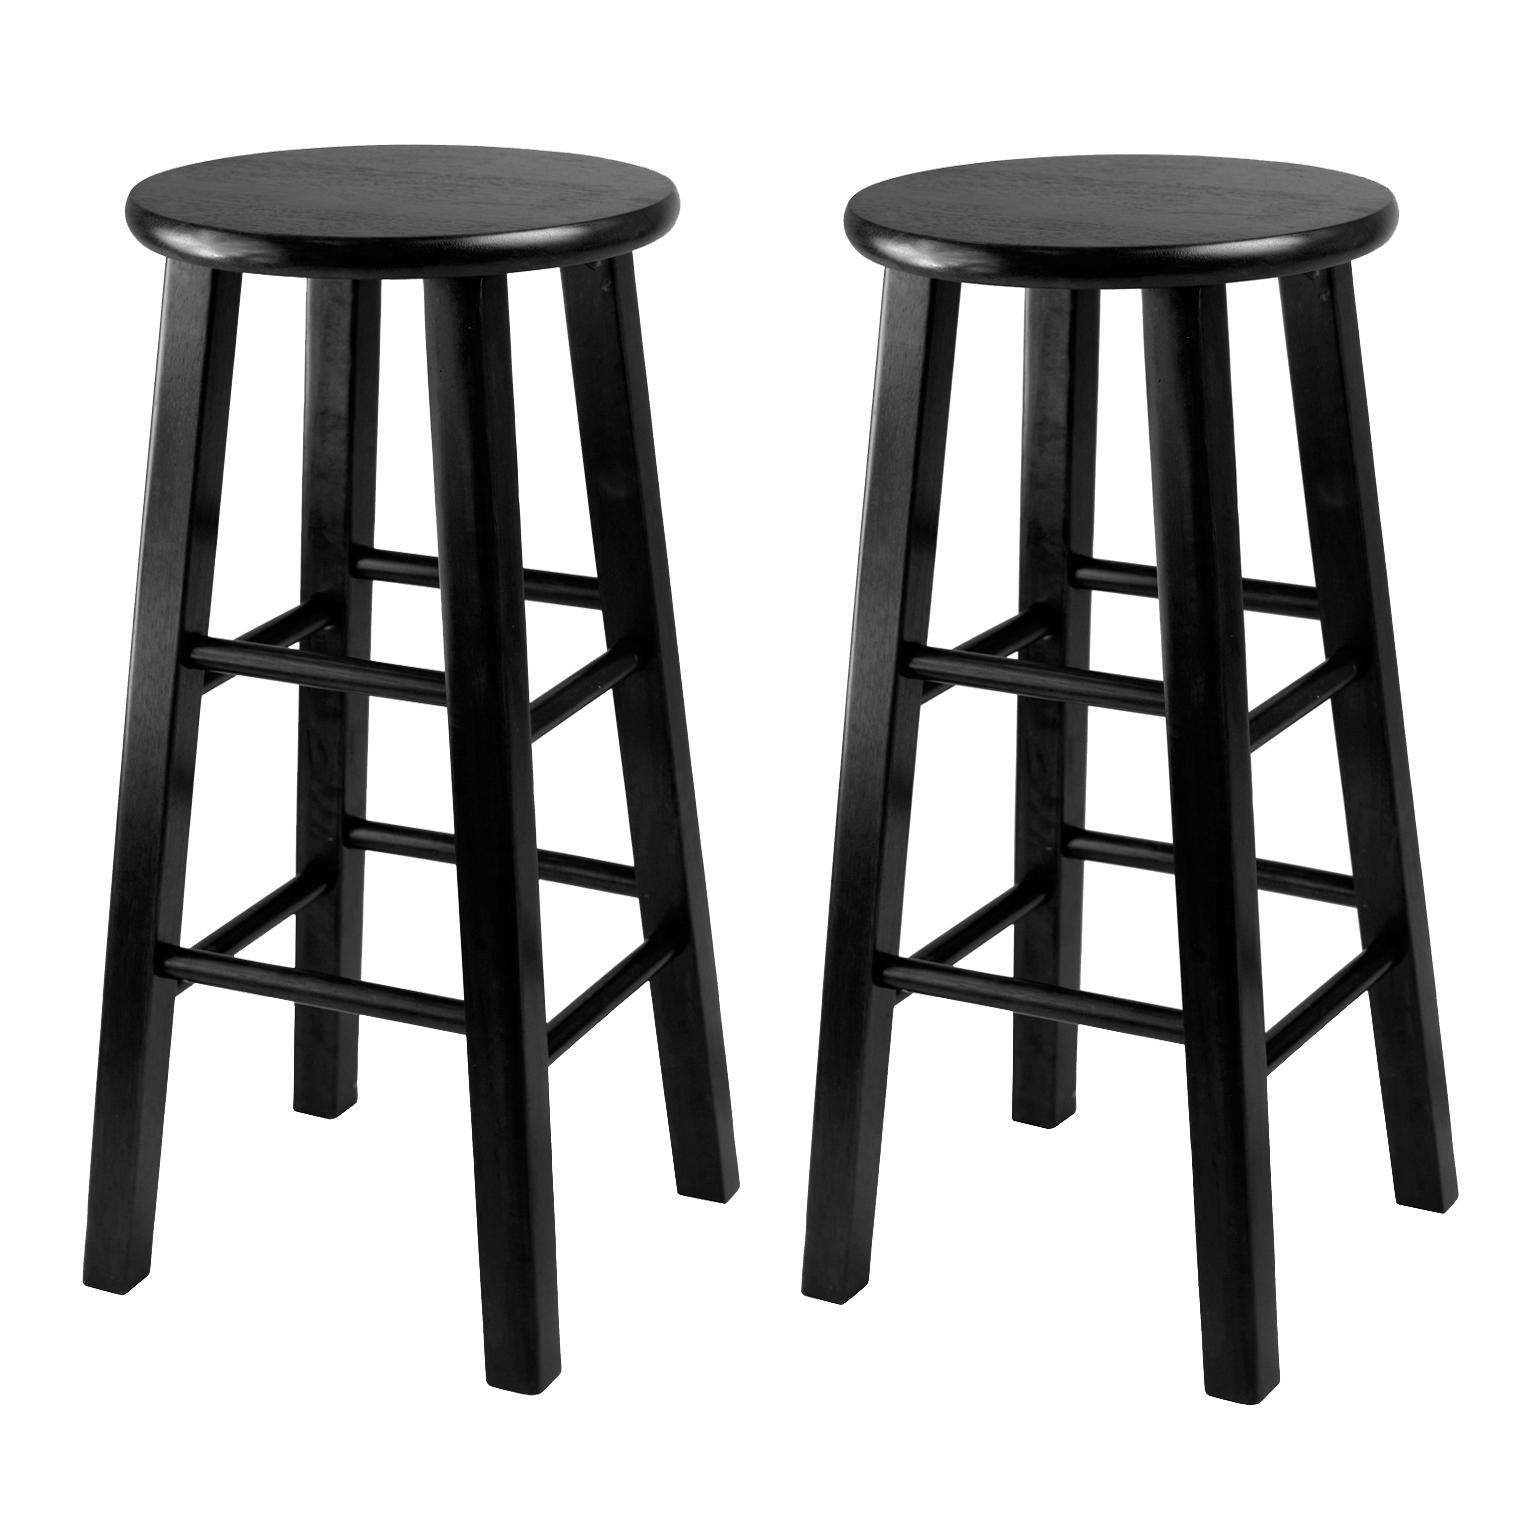 Amazon Winsome 24 Inch Square Leg Counter Stool Black Set